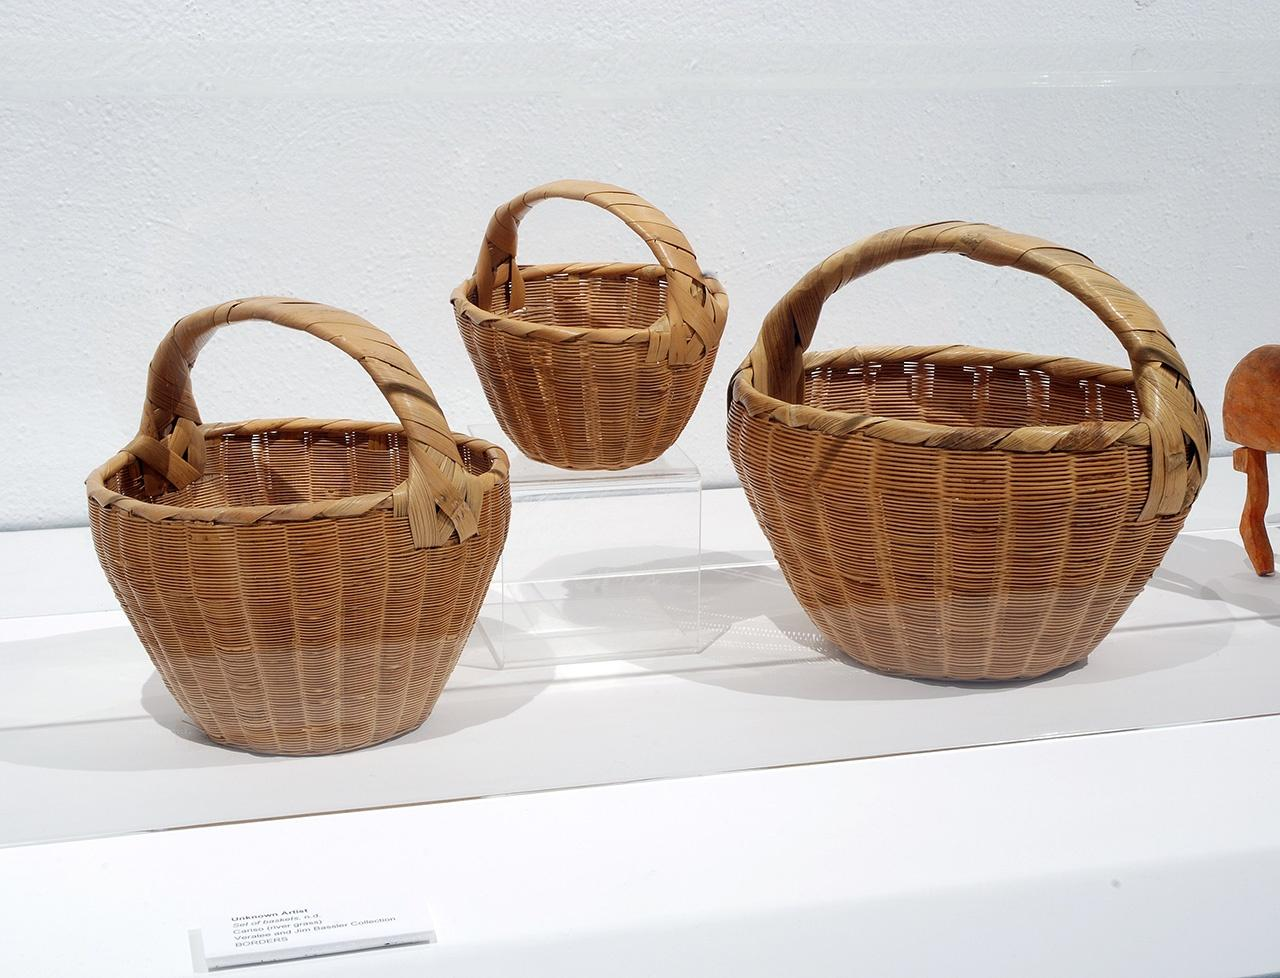 Objects, Borders and Neighbors, Unknown Artist, Set of baskets. n.d. Cariso (river grass) Veralee and Jim Bassler Collection